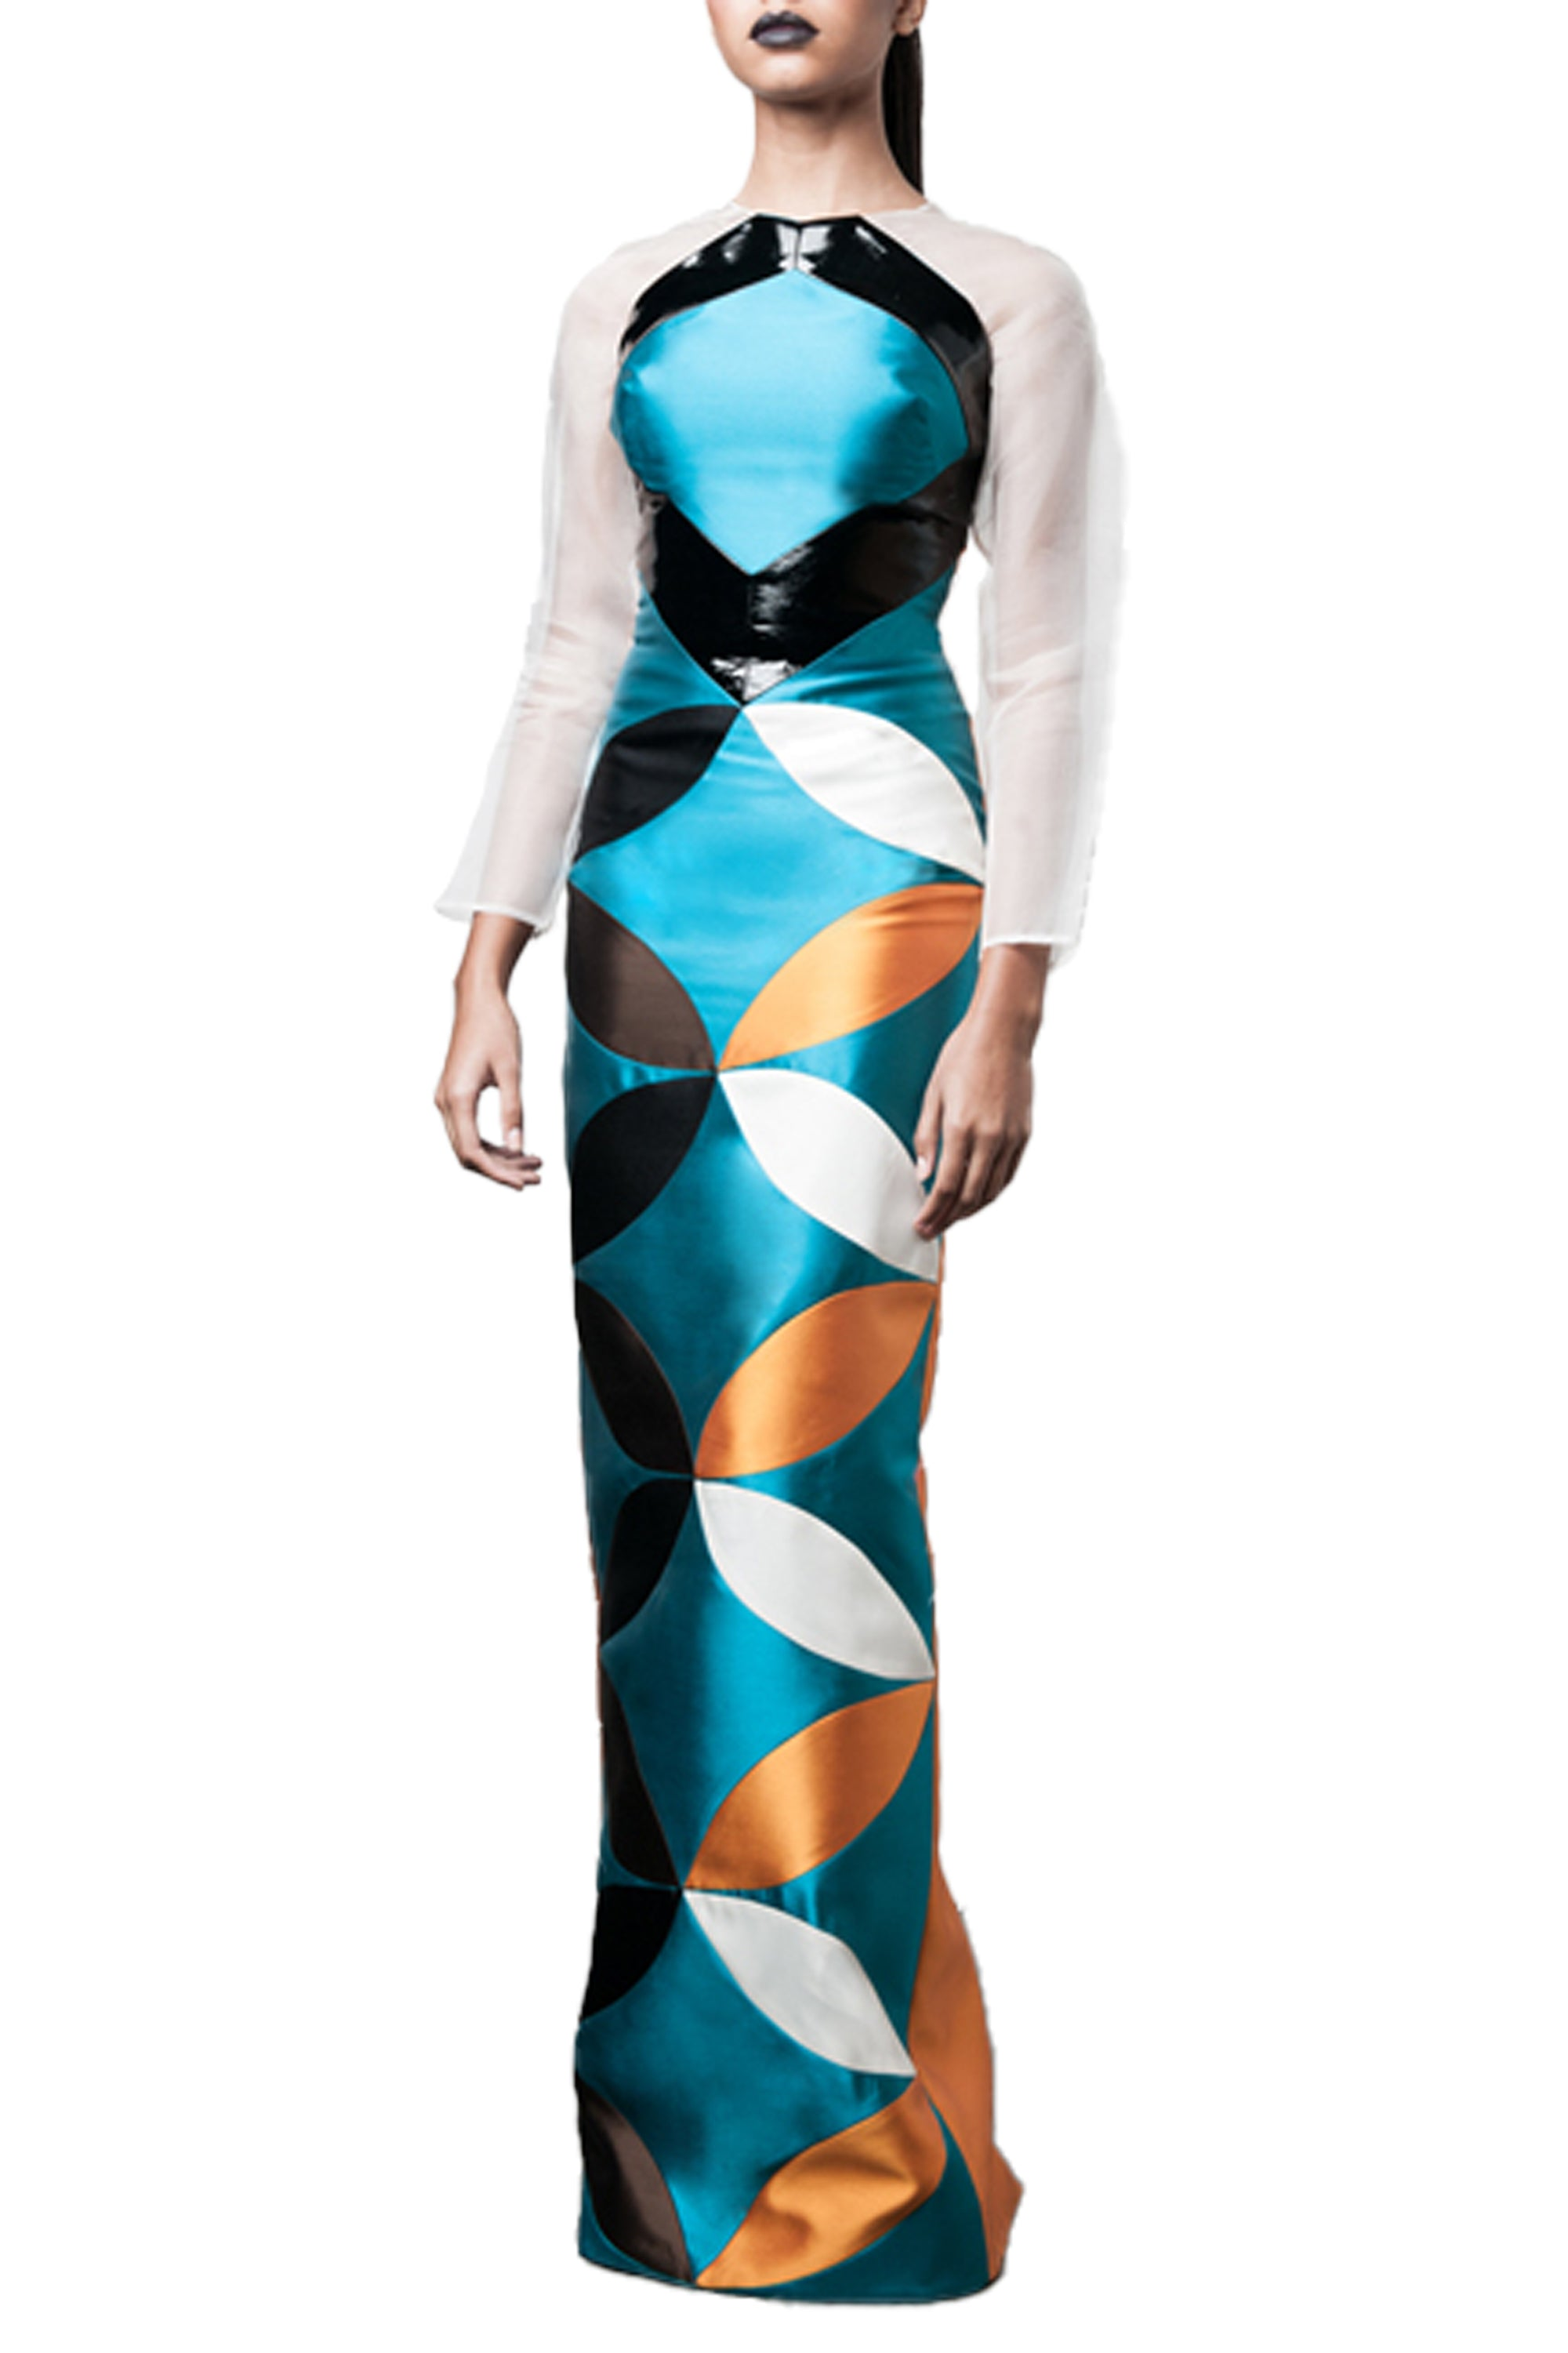 Washington Roberts Ellipse Gown - Womens geometric color blocked gown